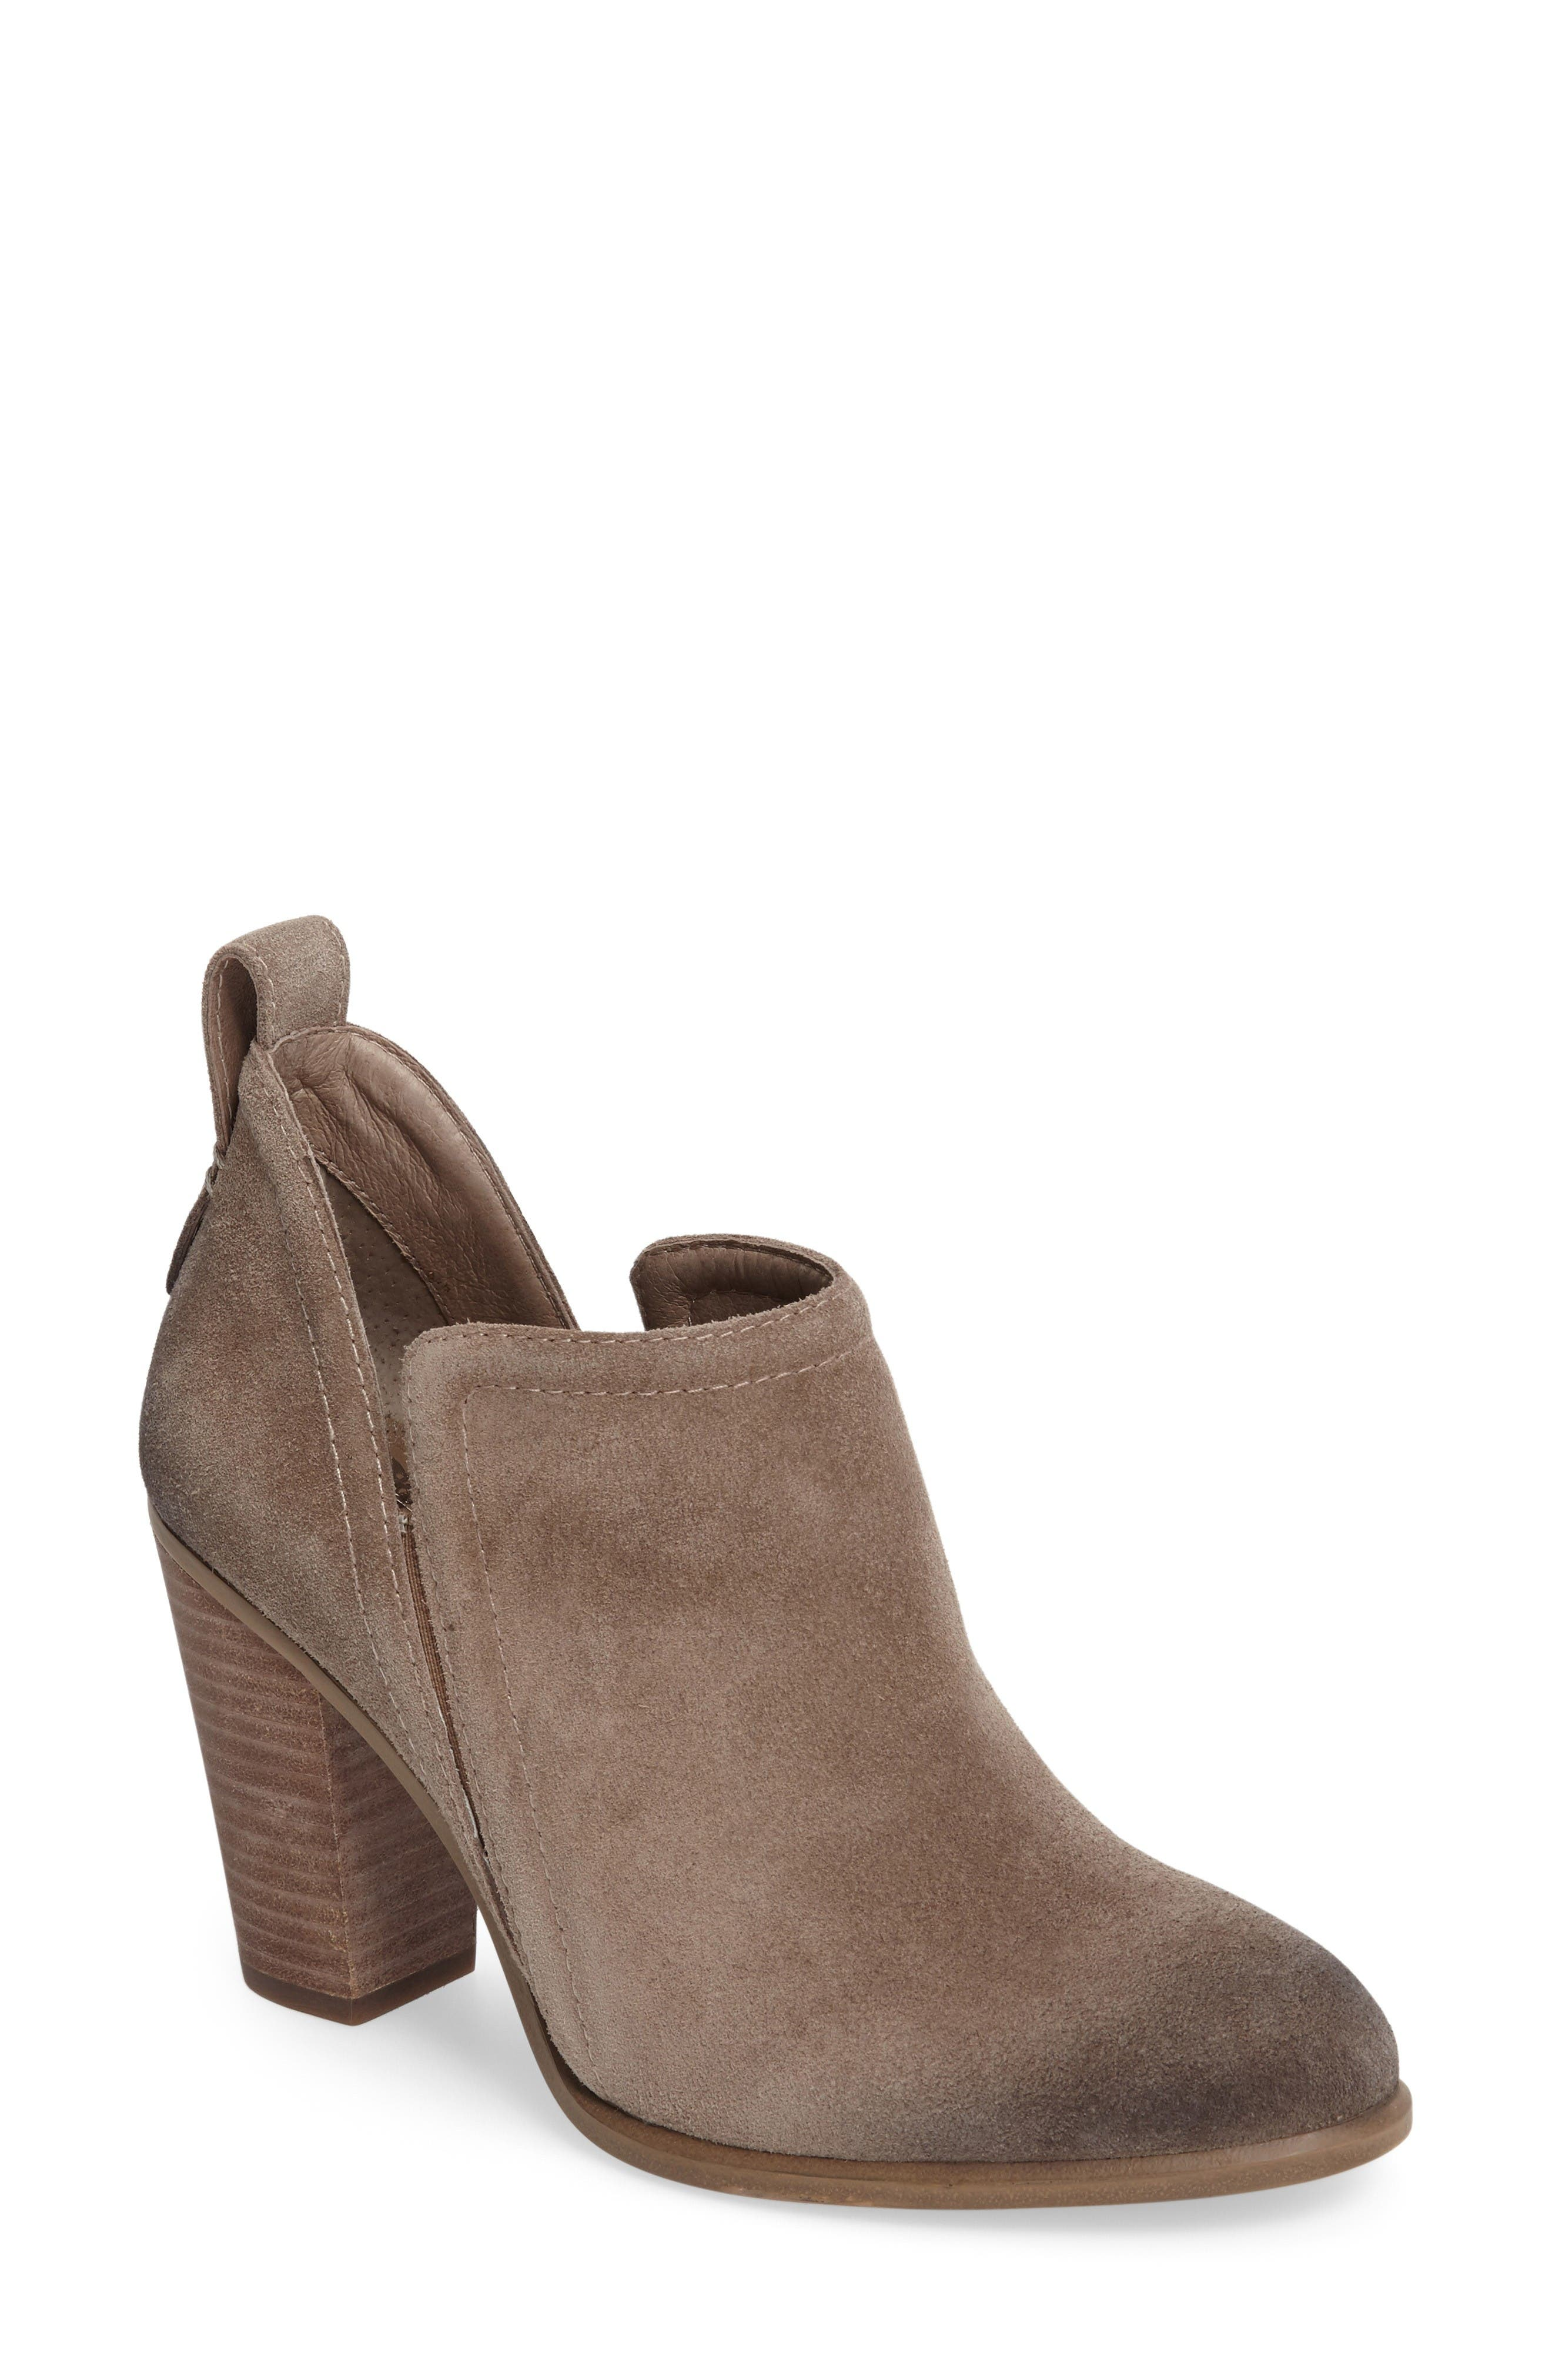 Alternate Image 1 Selected - Vince Camuto Francia Bootie (Women)